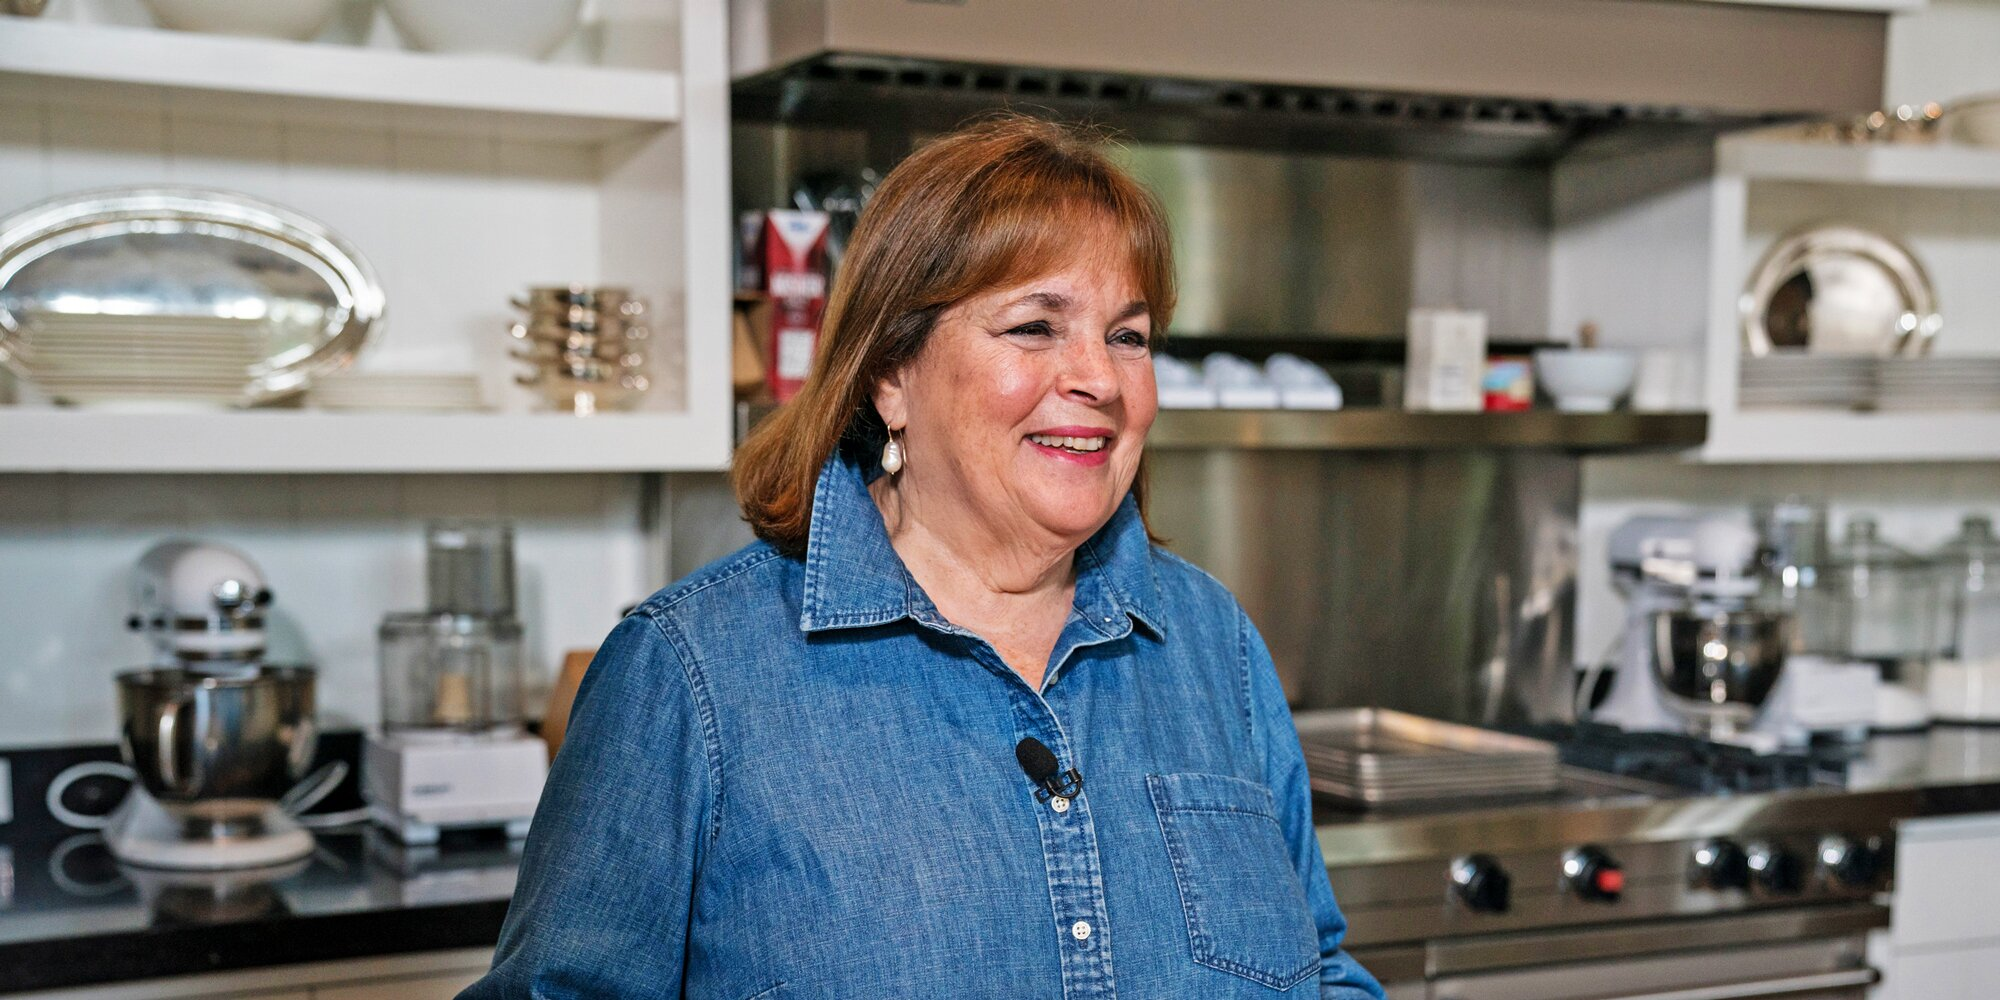 10 Tips from Ina Garten That Improved the Quality of My Life